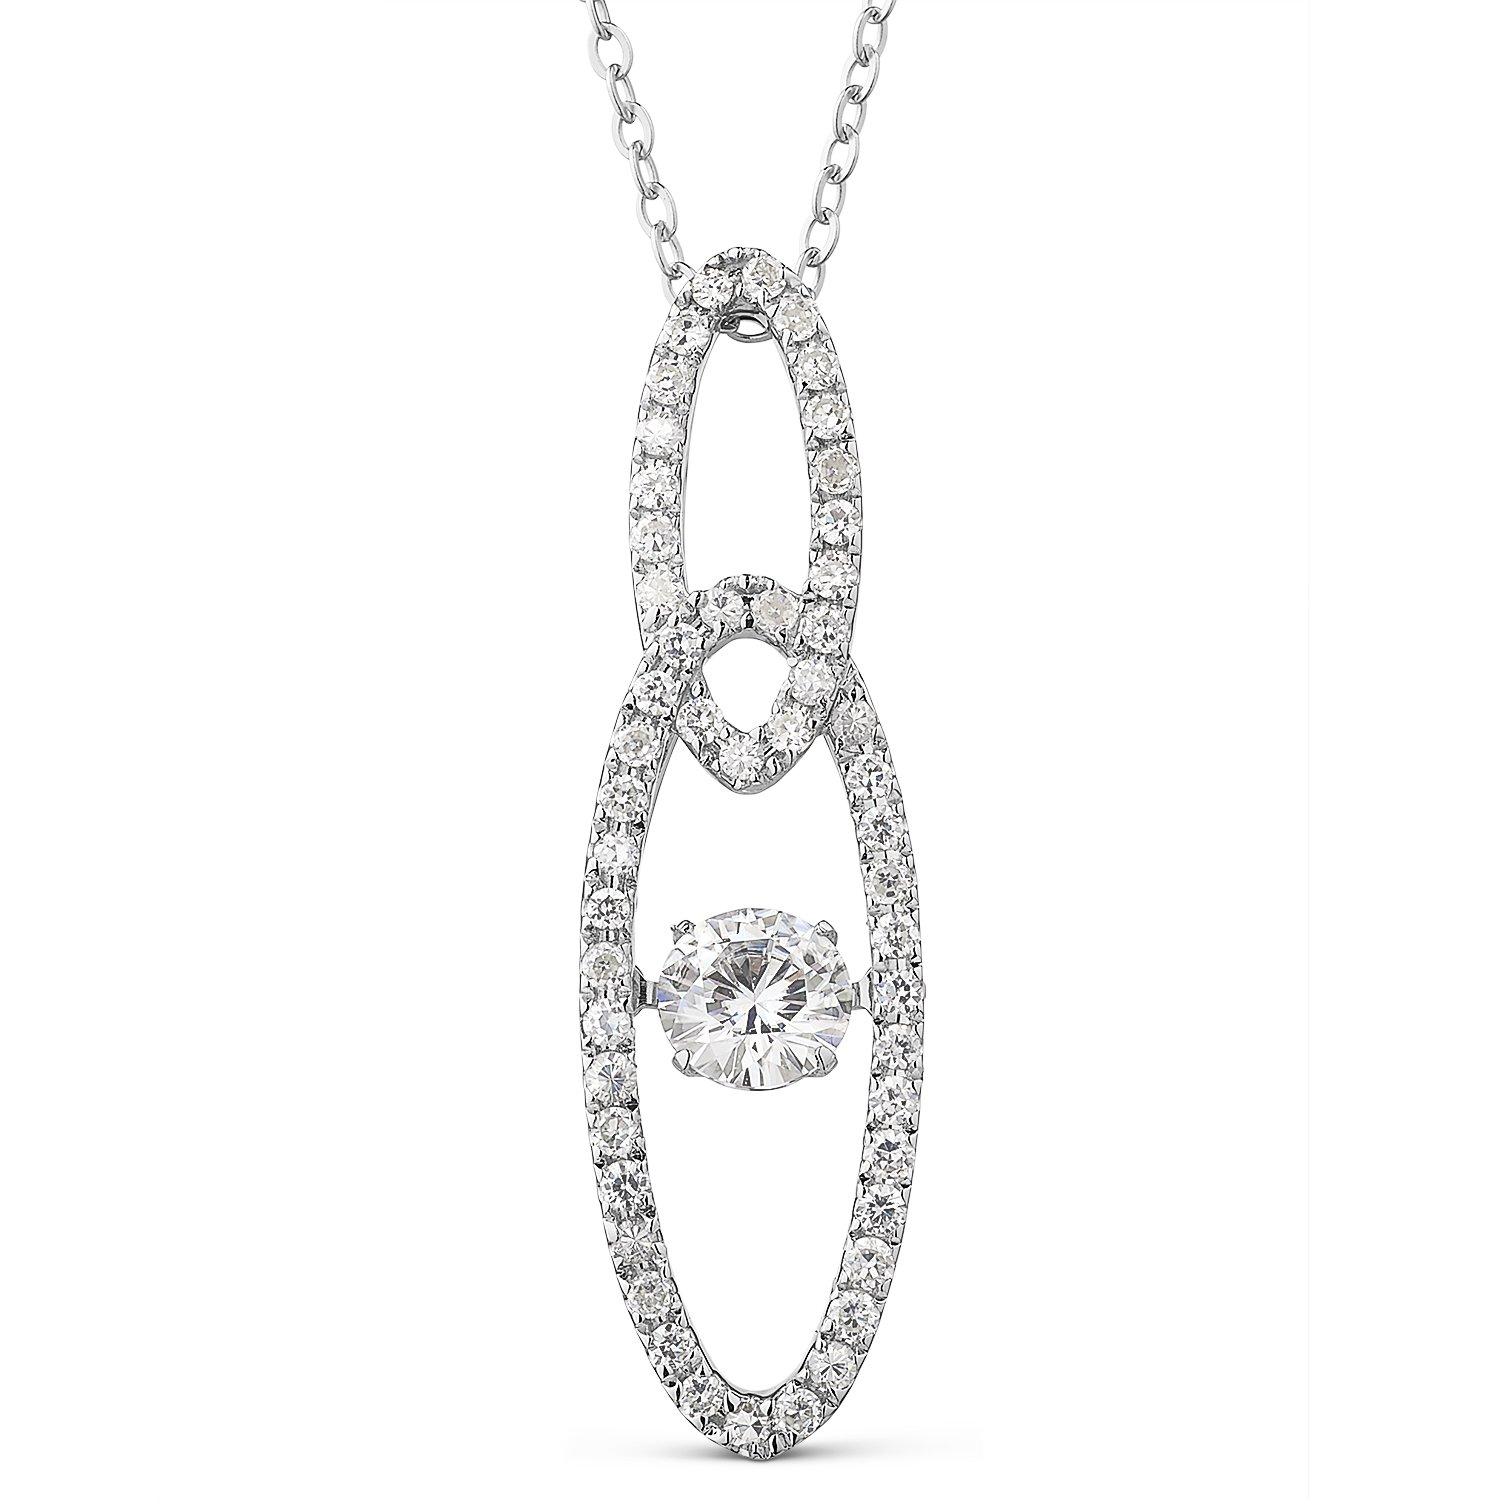 Forever Brilliant White Gold Round 5.0mm Moissanite Pendant Necklace, 0.87ct DEW By Charles & Colvard